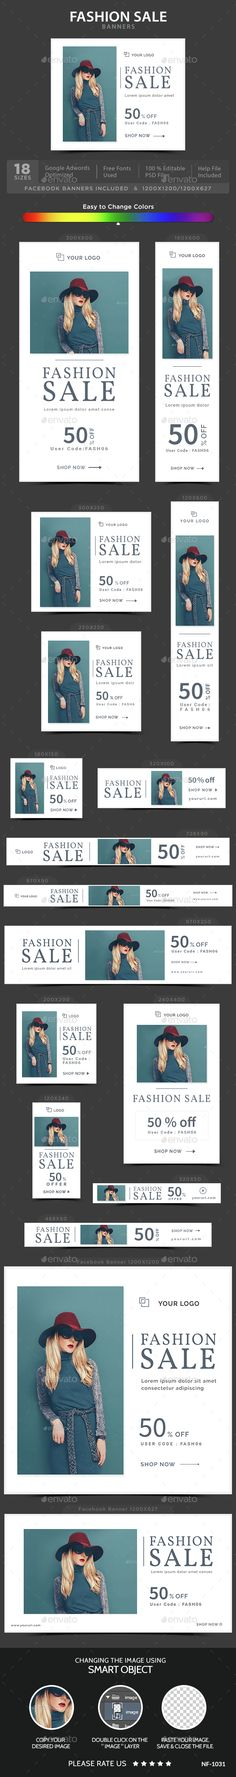 Fashion Sale Banners — Photoshop PSD #deal #promotions • Available here → https://graphicriver.net/item/fashion-sale-banners/14720130?ref=pxcr